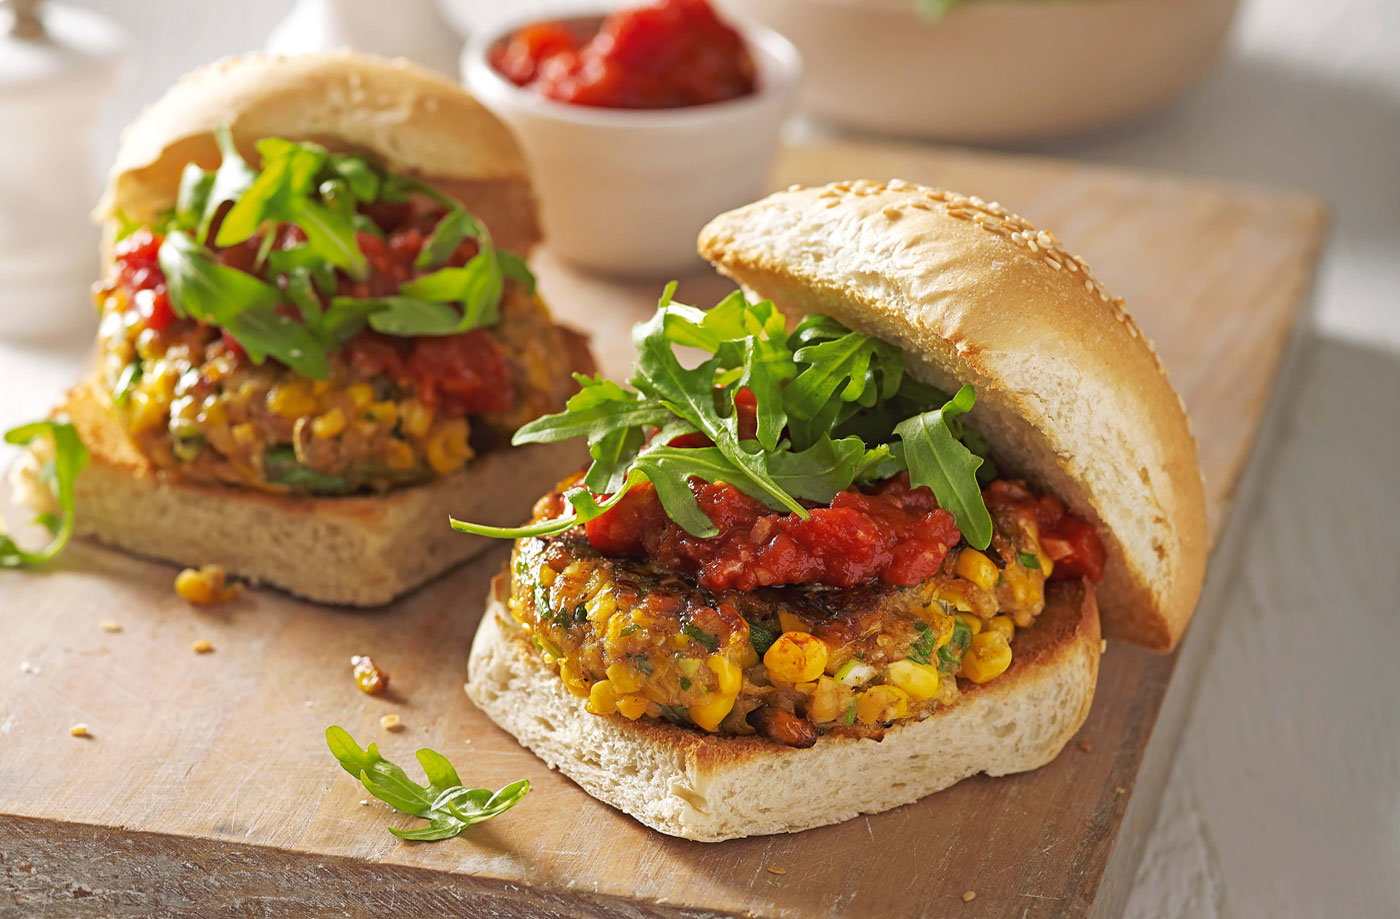 Sweetcorn and chickpea burgers with smoky tomato sauce